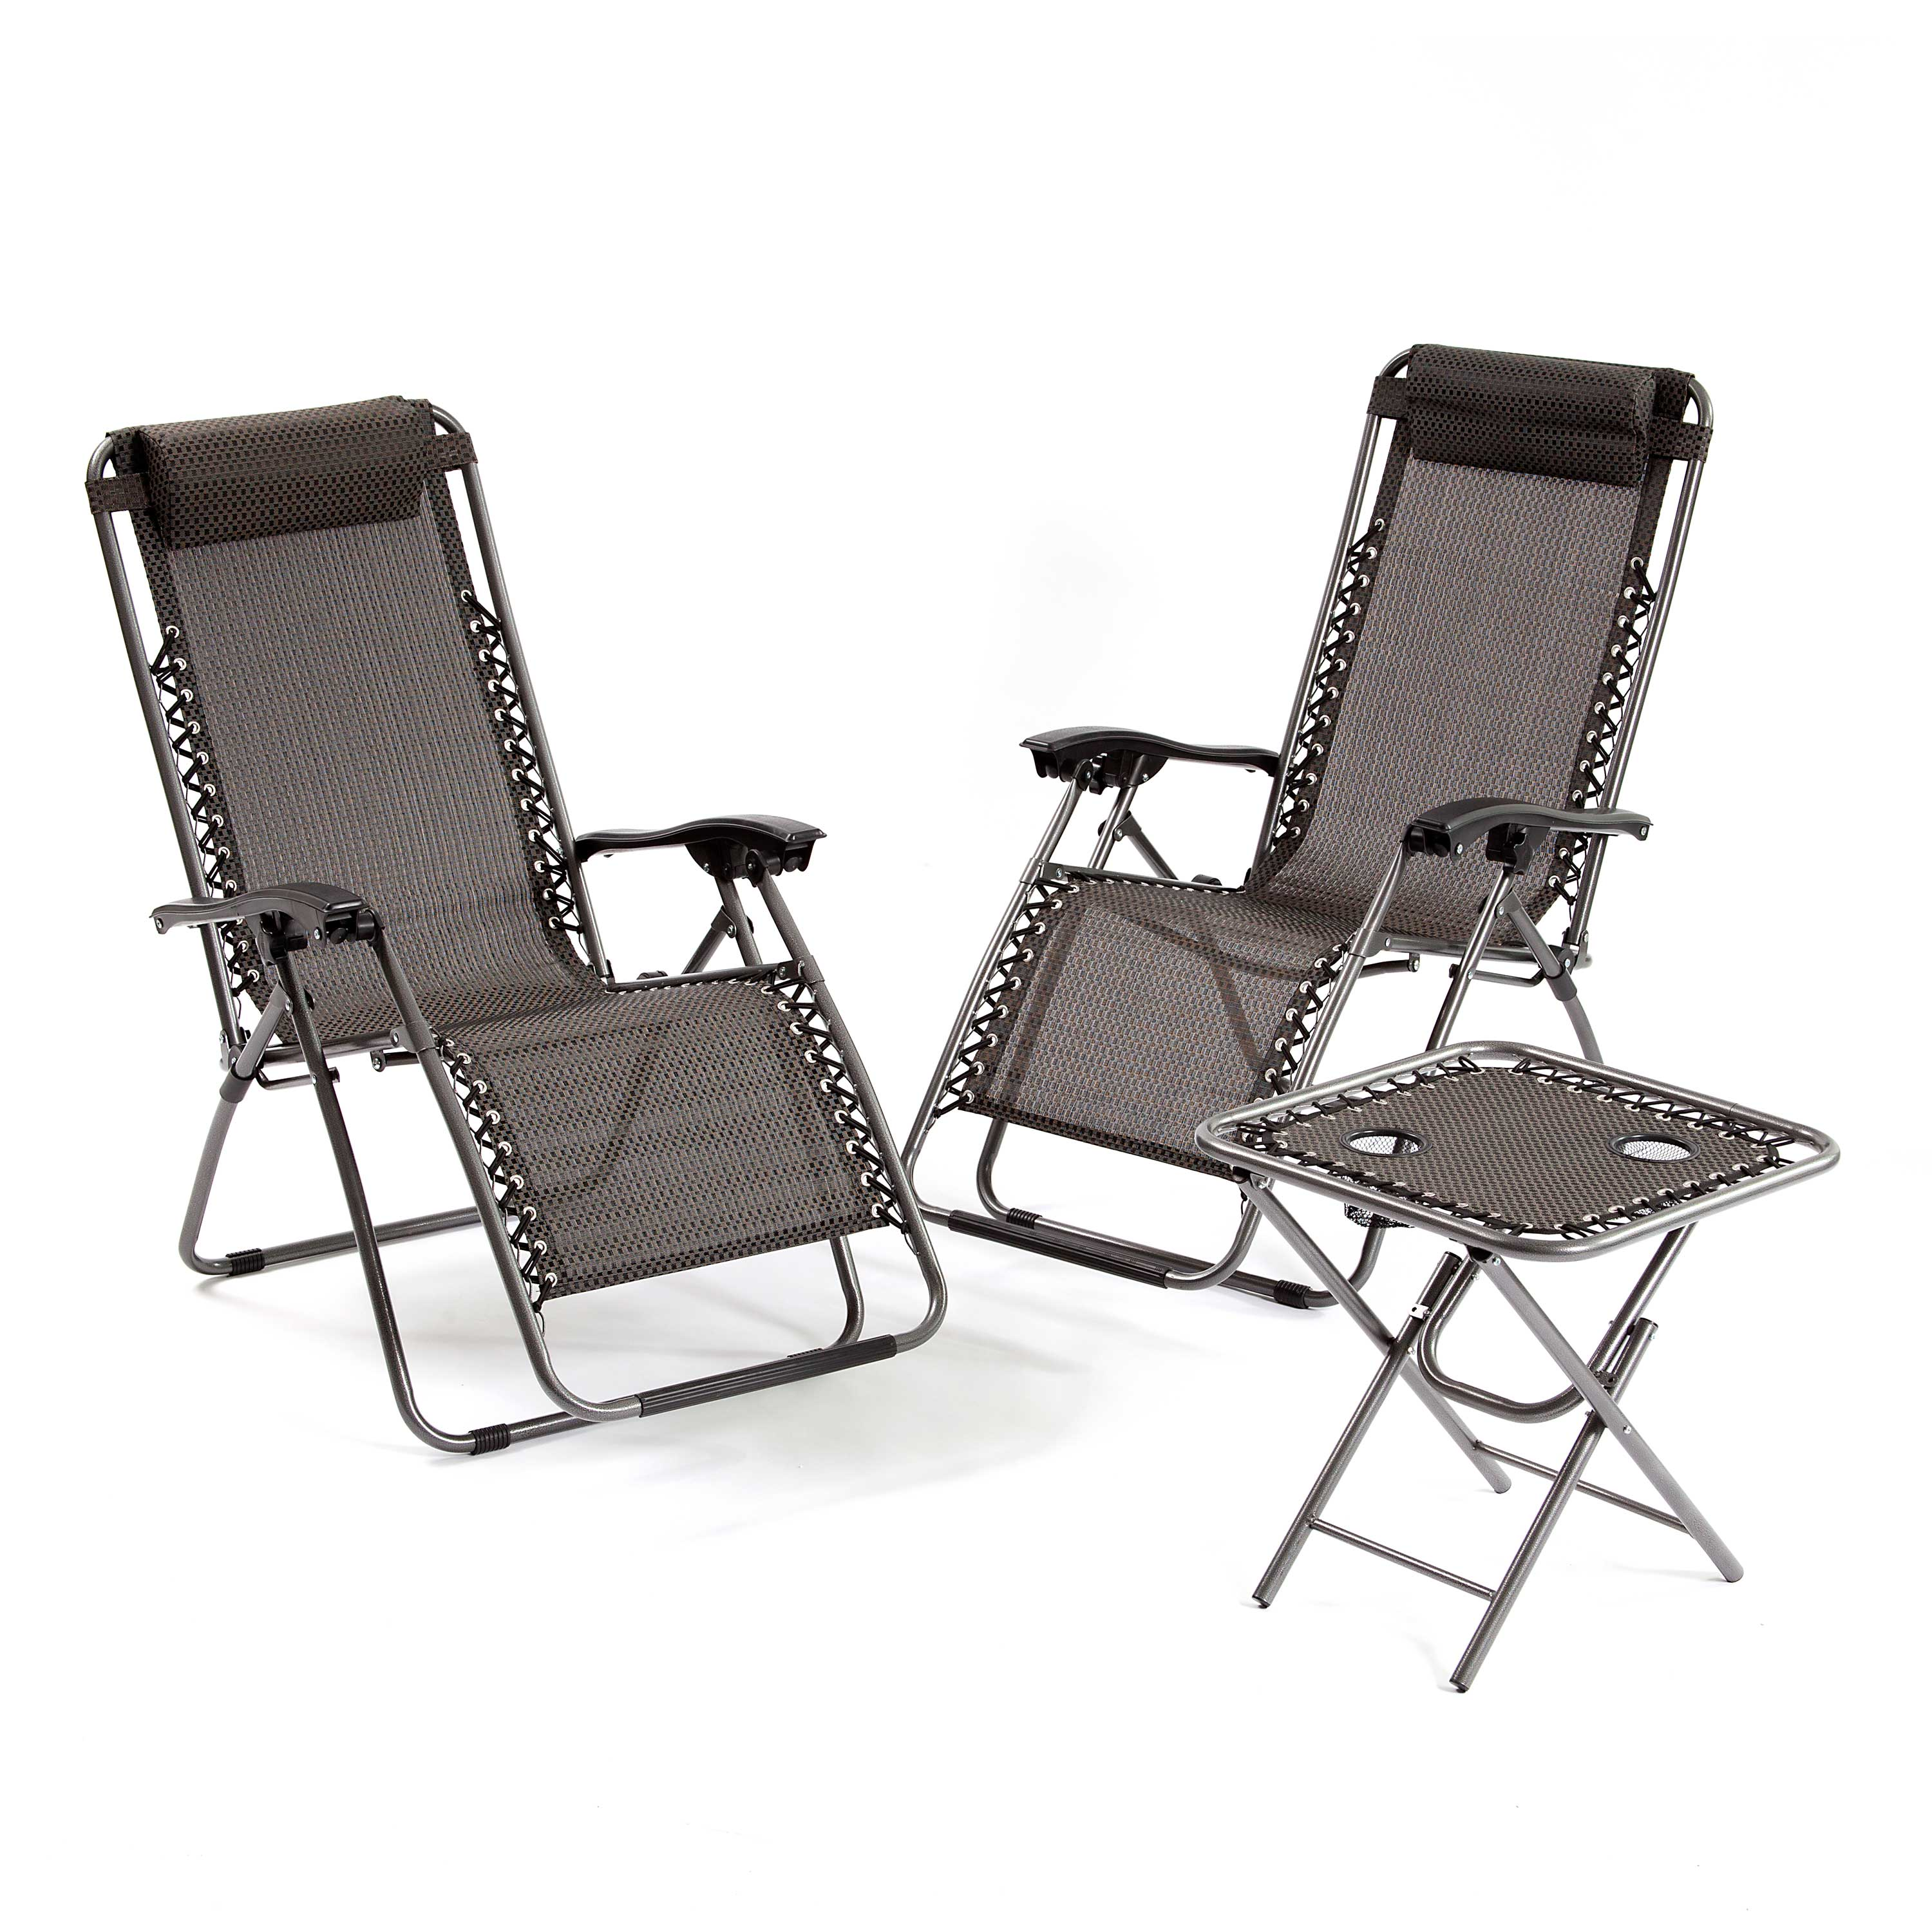 Suntime 3 Piece Zero Gravity Grey Garden Recliner Collection